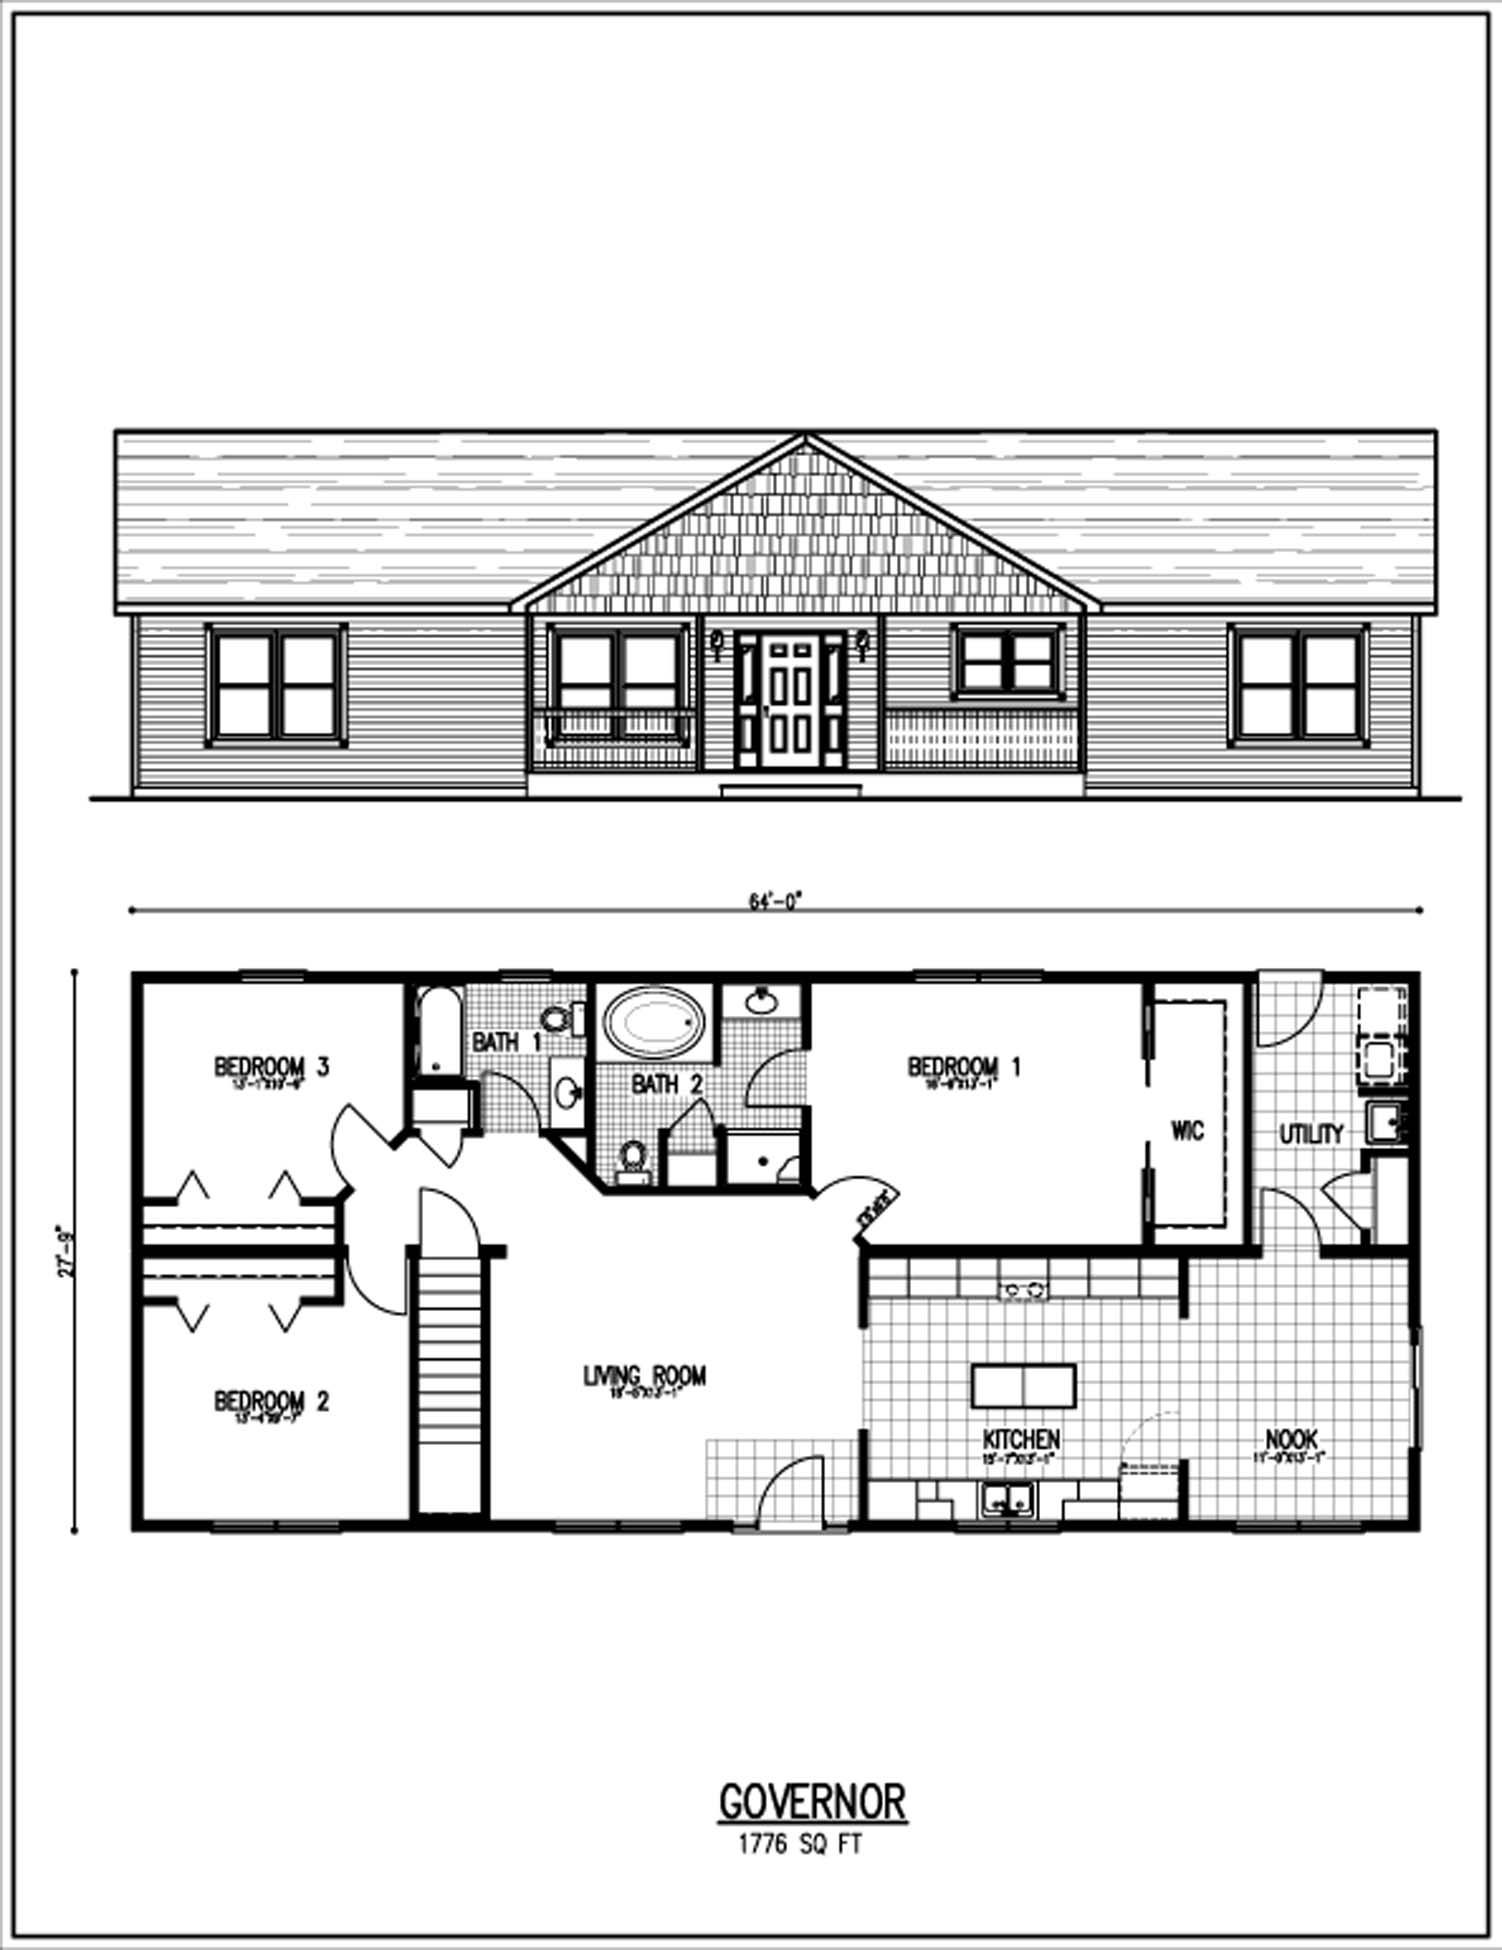 Floor plans by shawam082498 on pinterest floor plans for Ranch style home plans